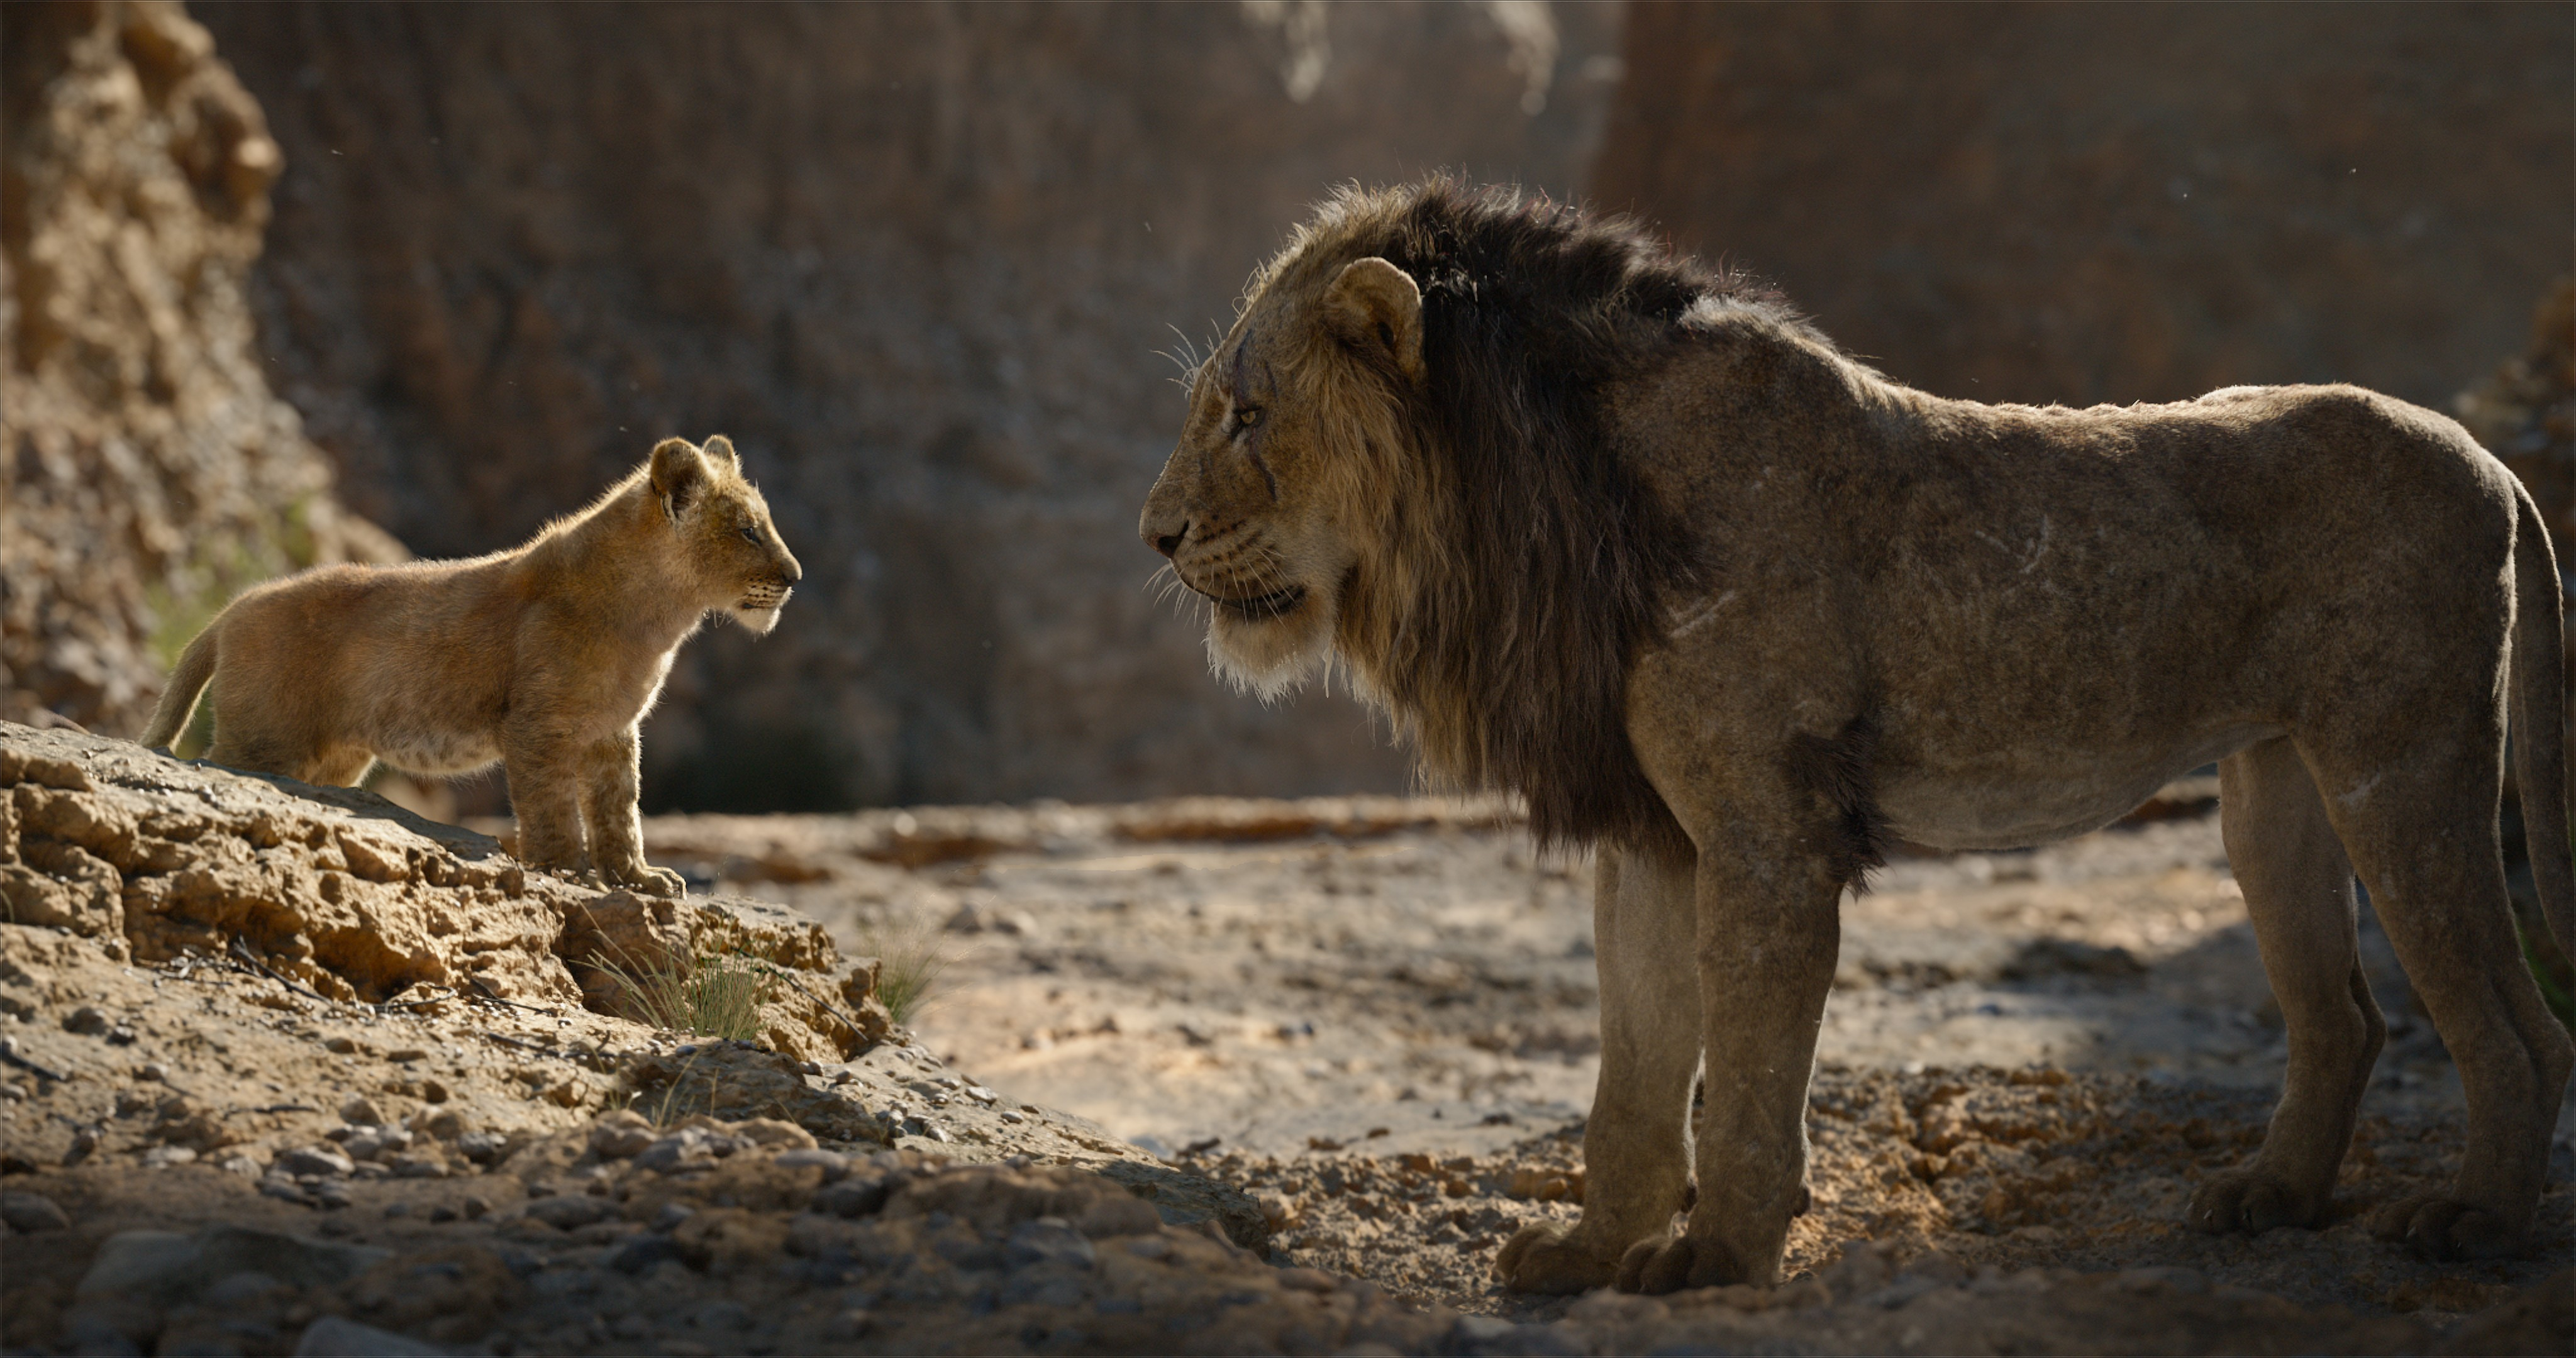 Lion King Harshest Reviews